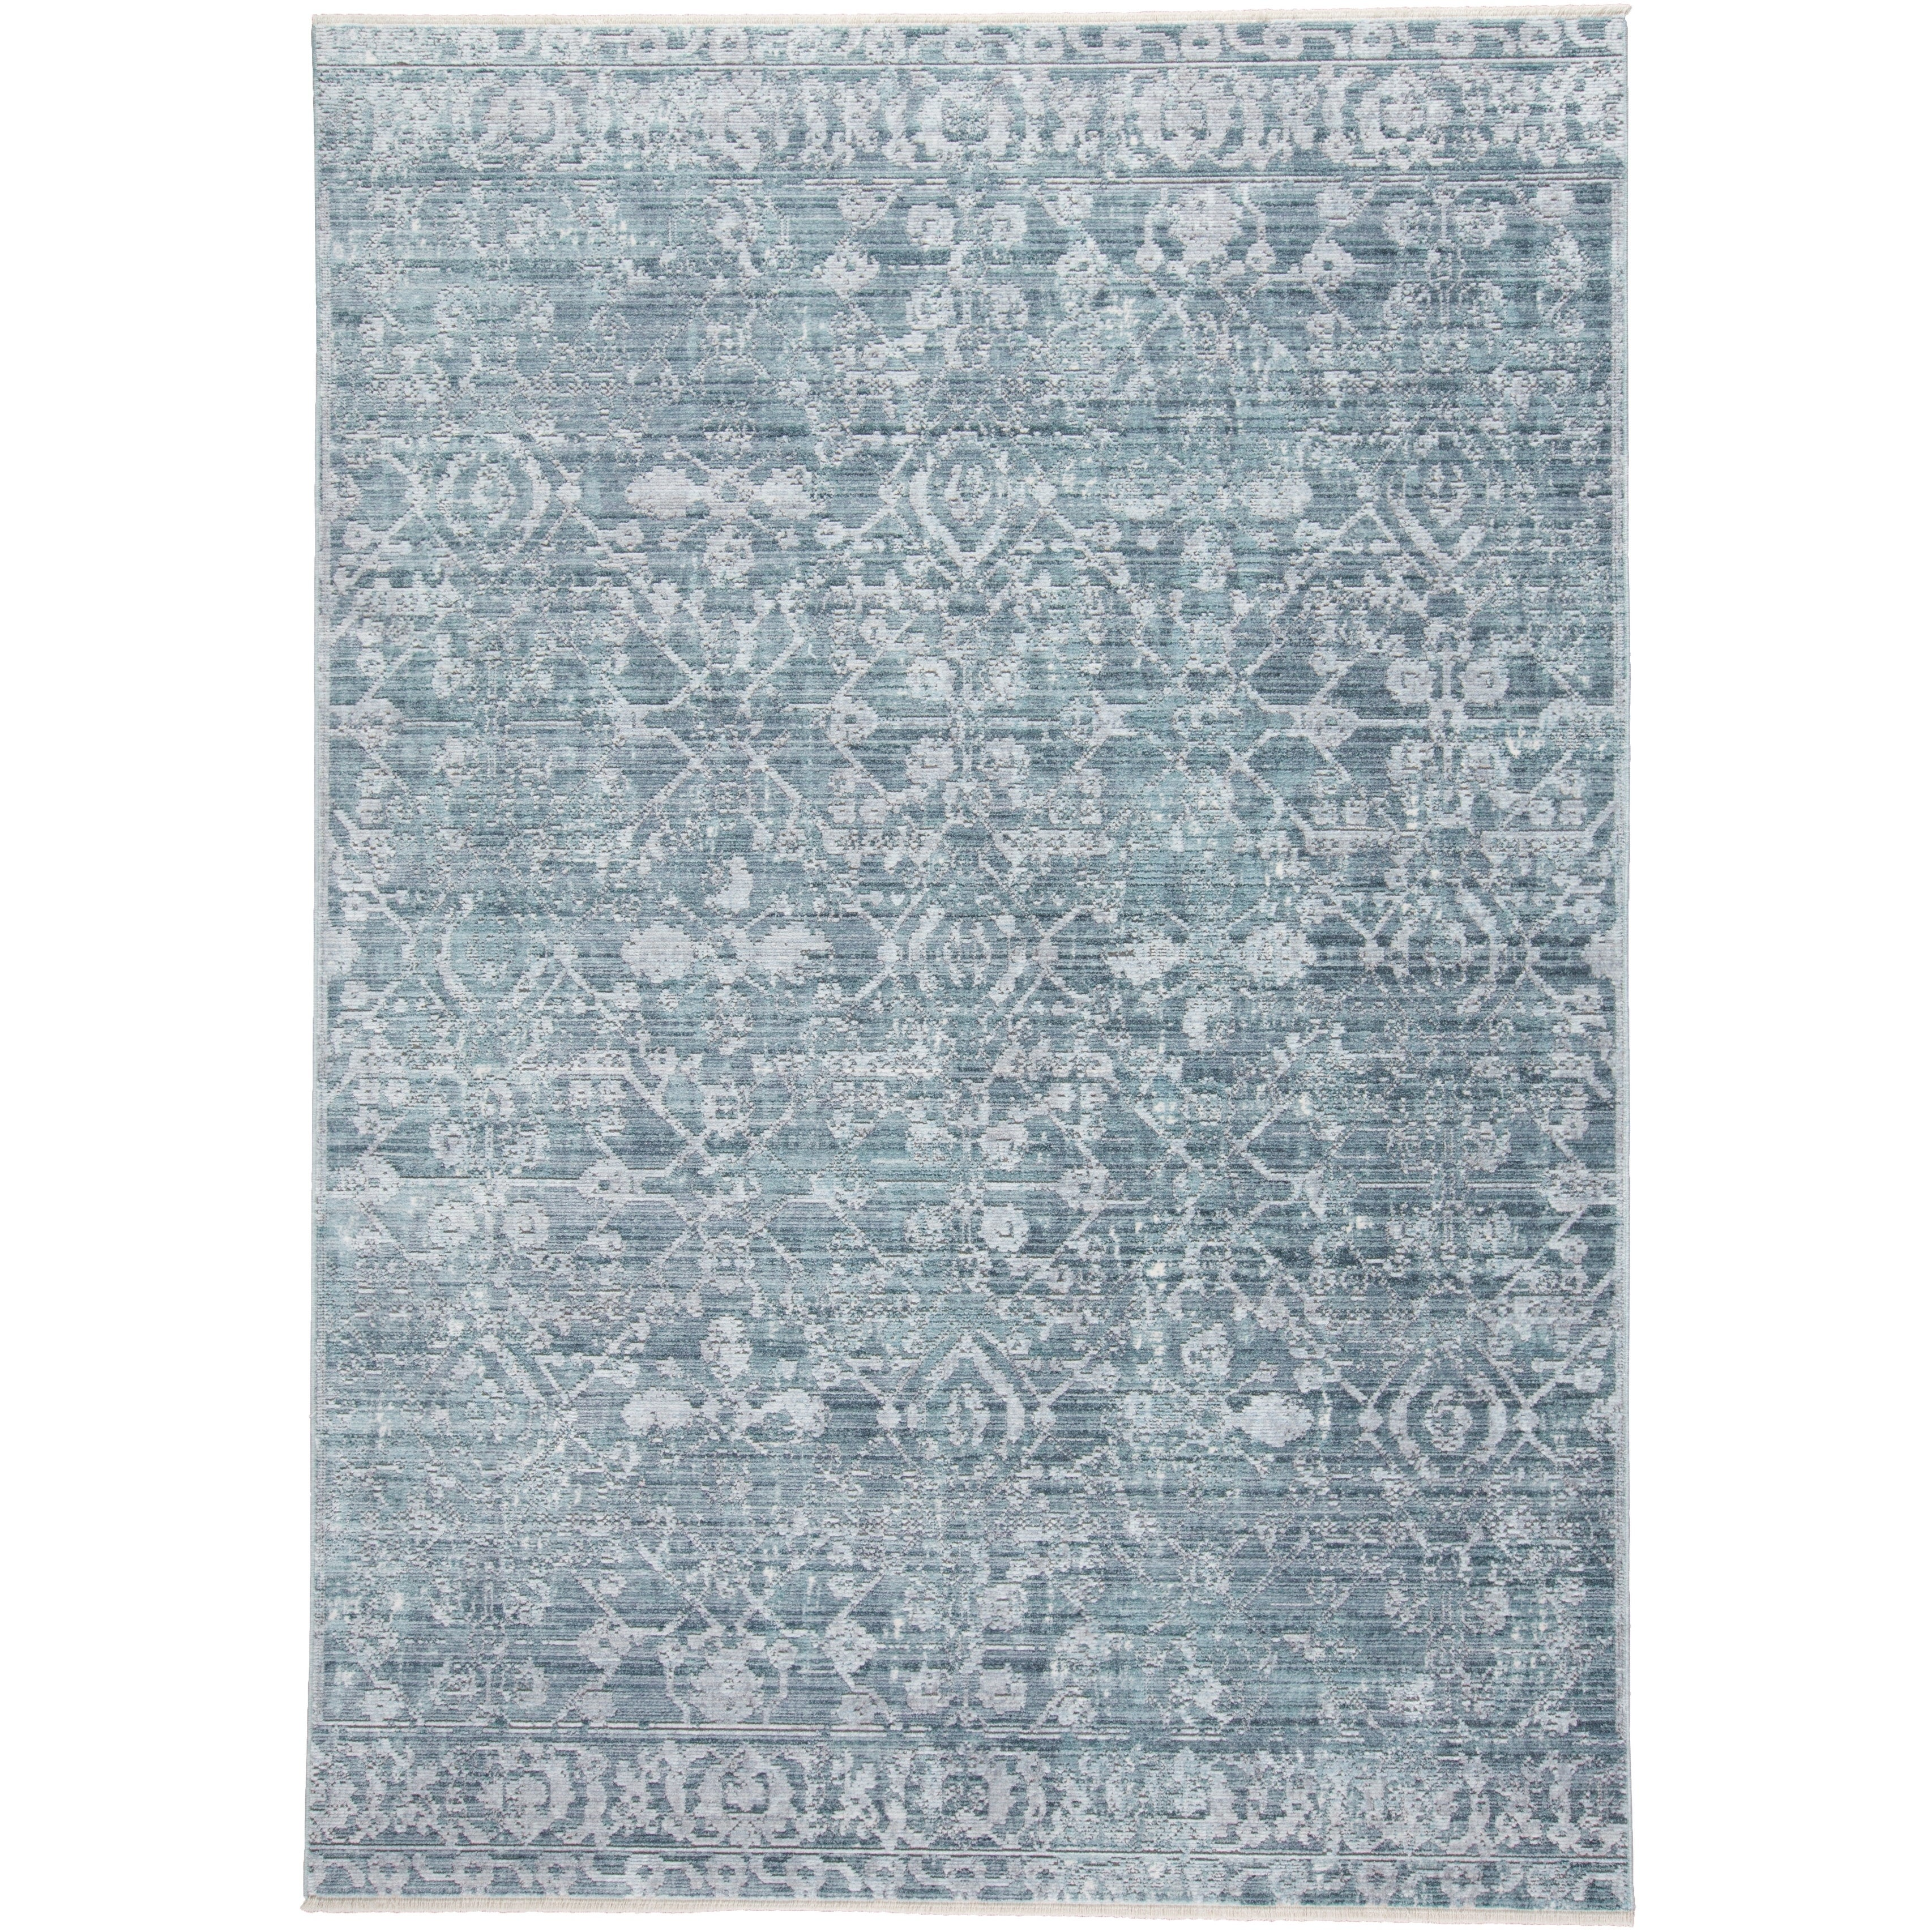 Grand Bazaar Tirza Blue/Turquoise - 710 x 10 (Blue/Turquoise - 710 x 10)